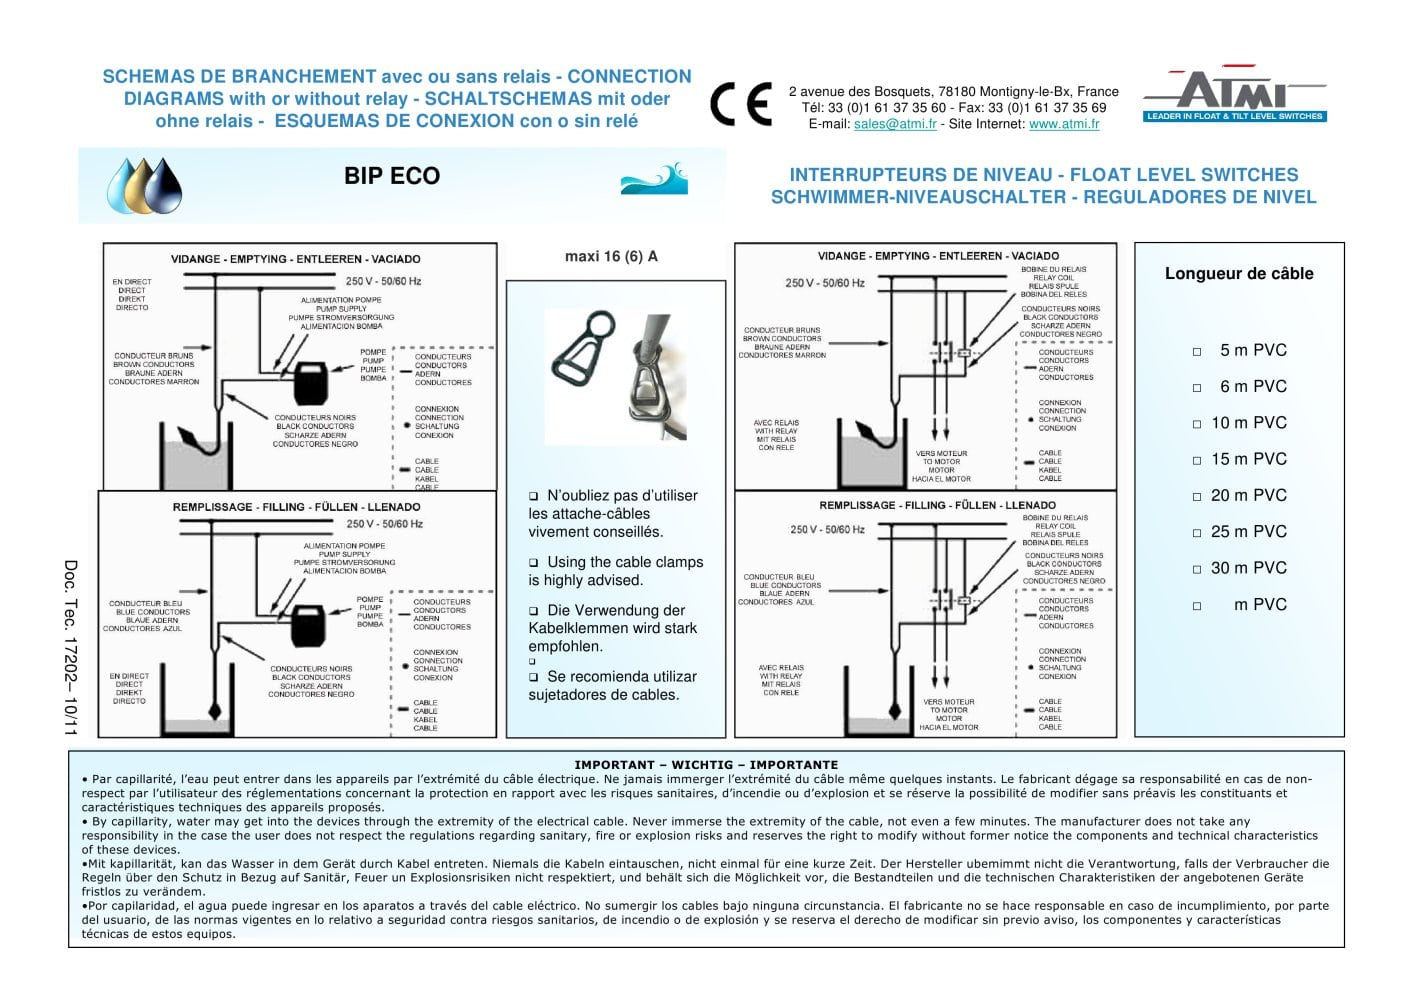 Wiring Diagrams Bip Eco Atmi Pdf Catalogue Technical Electronic Ballast Diagram 1 Pages